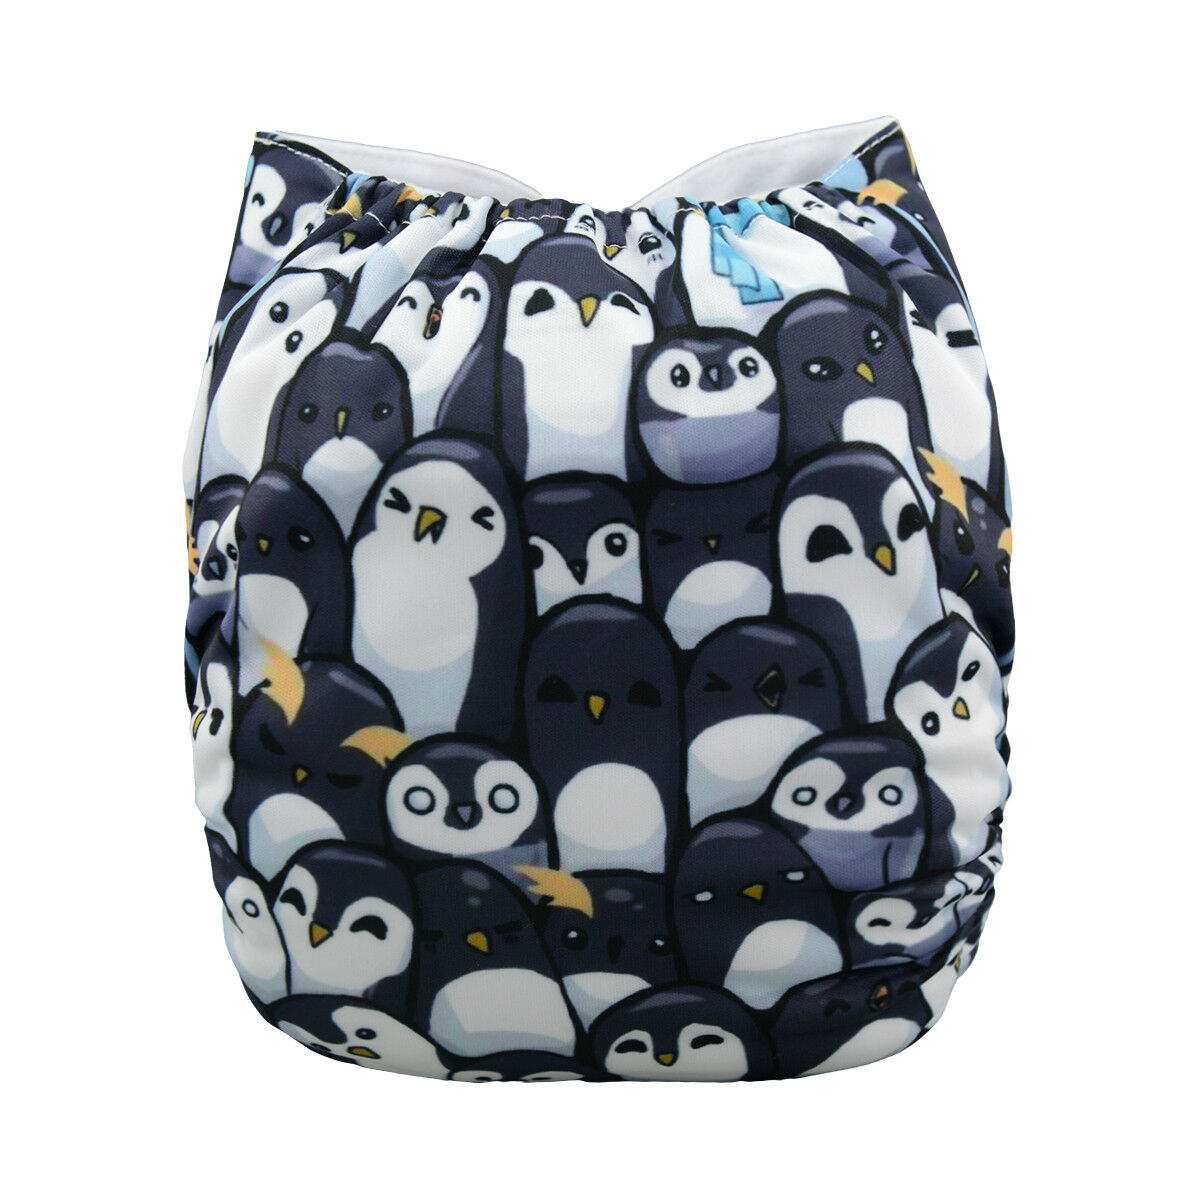 ALVABABY Reusable Baby Cloth Diapers OneSize Washable Pocket Nappies With Insert YD76